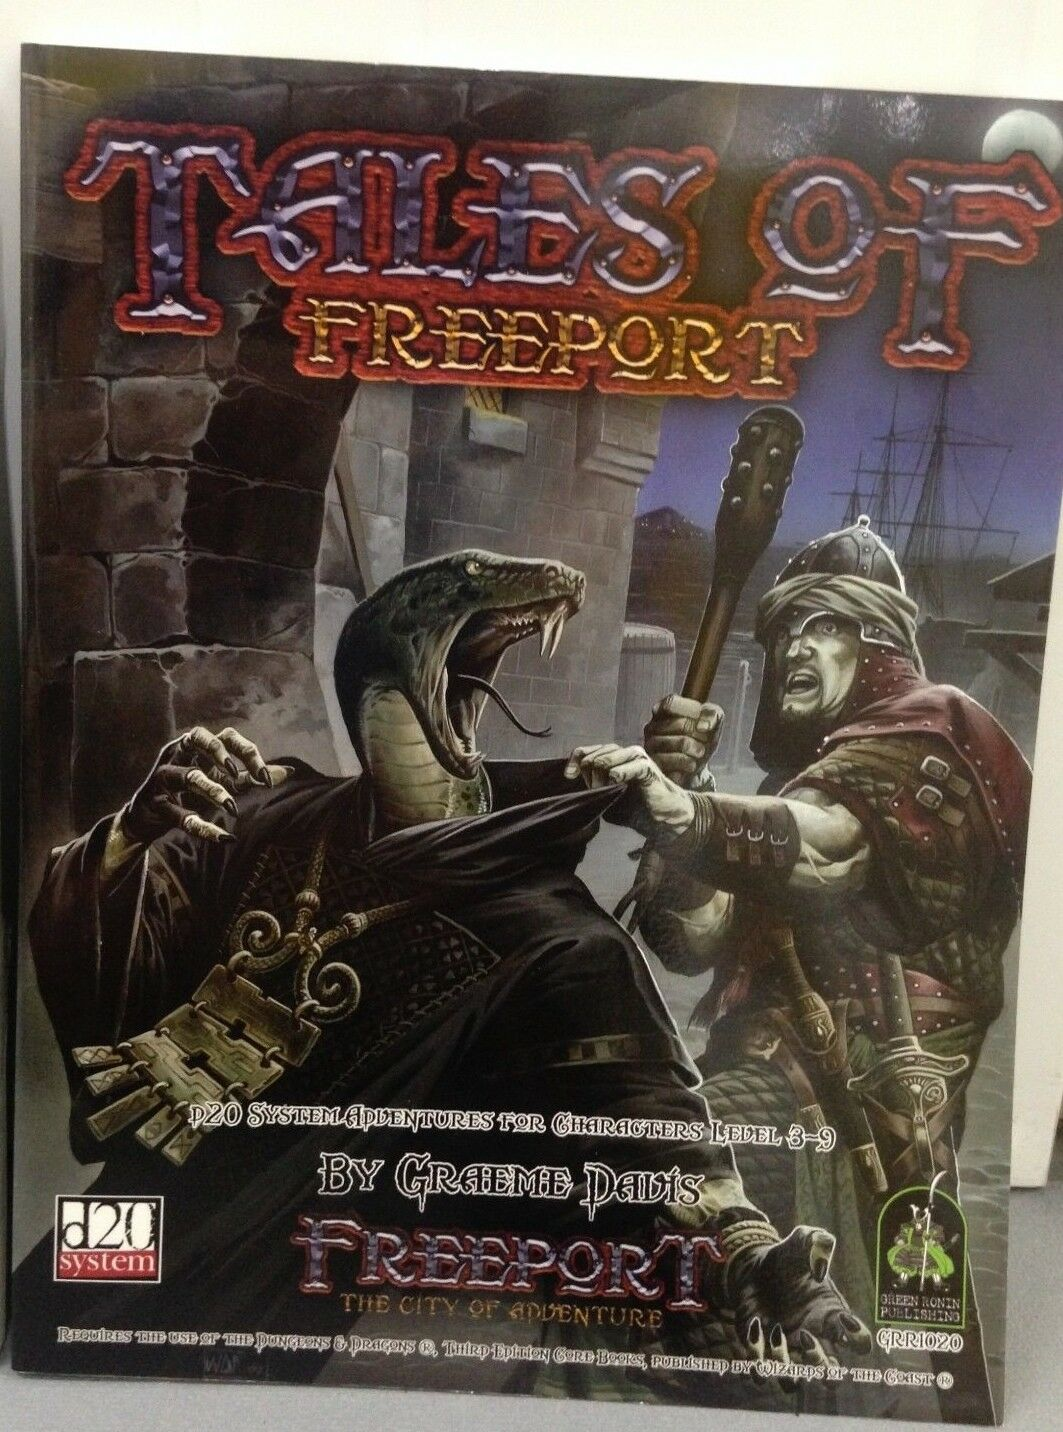 Freeport D20 AD&D - Tales of Freeport - New